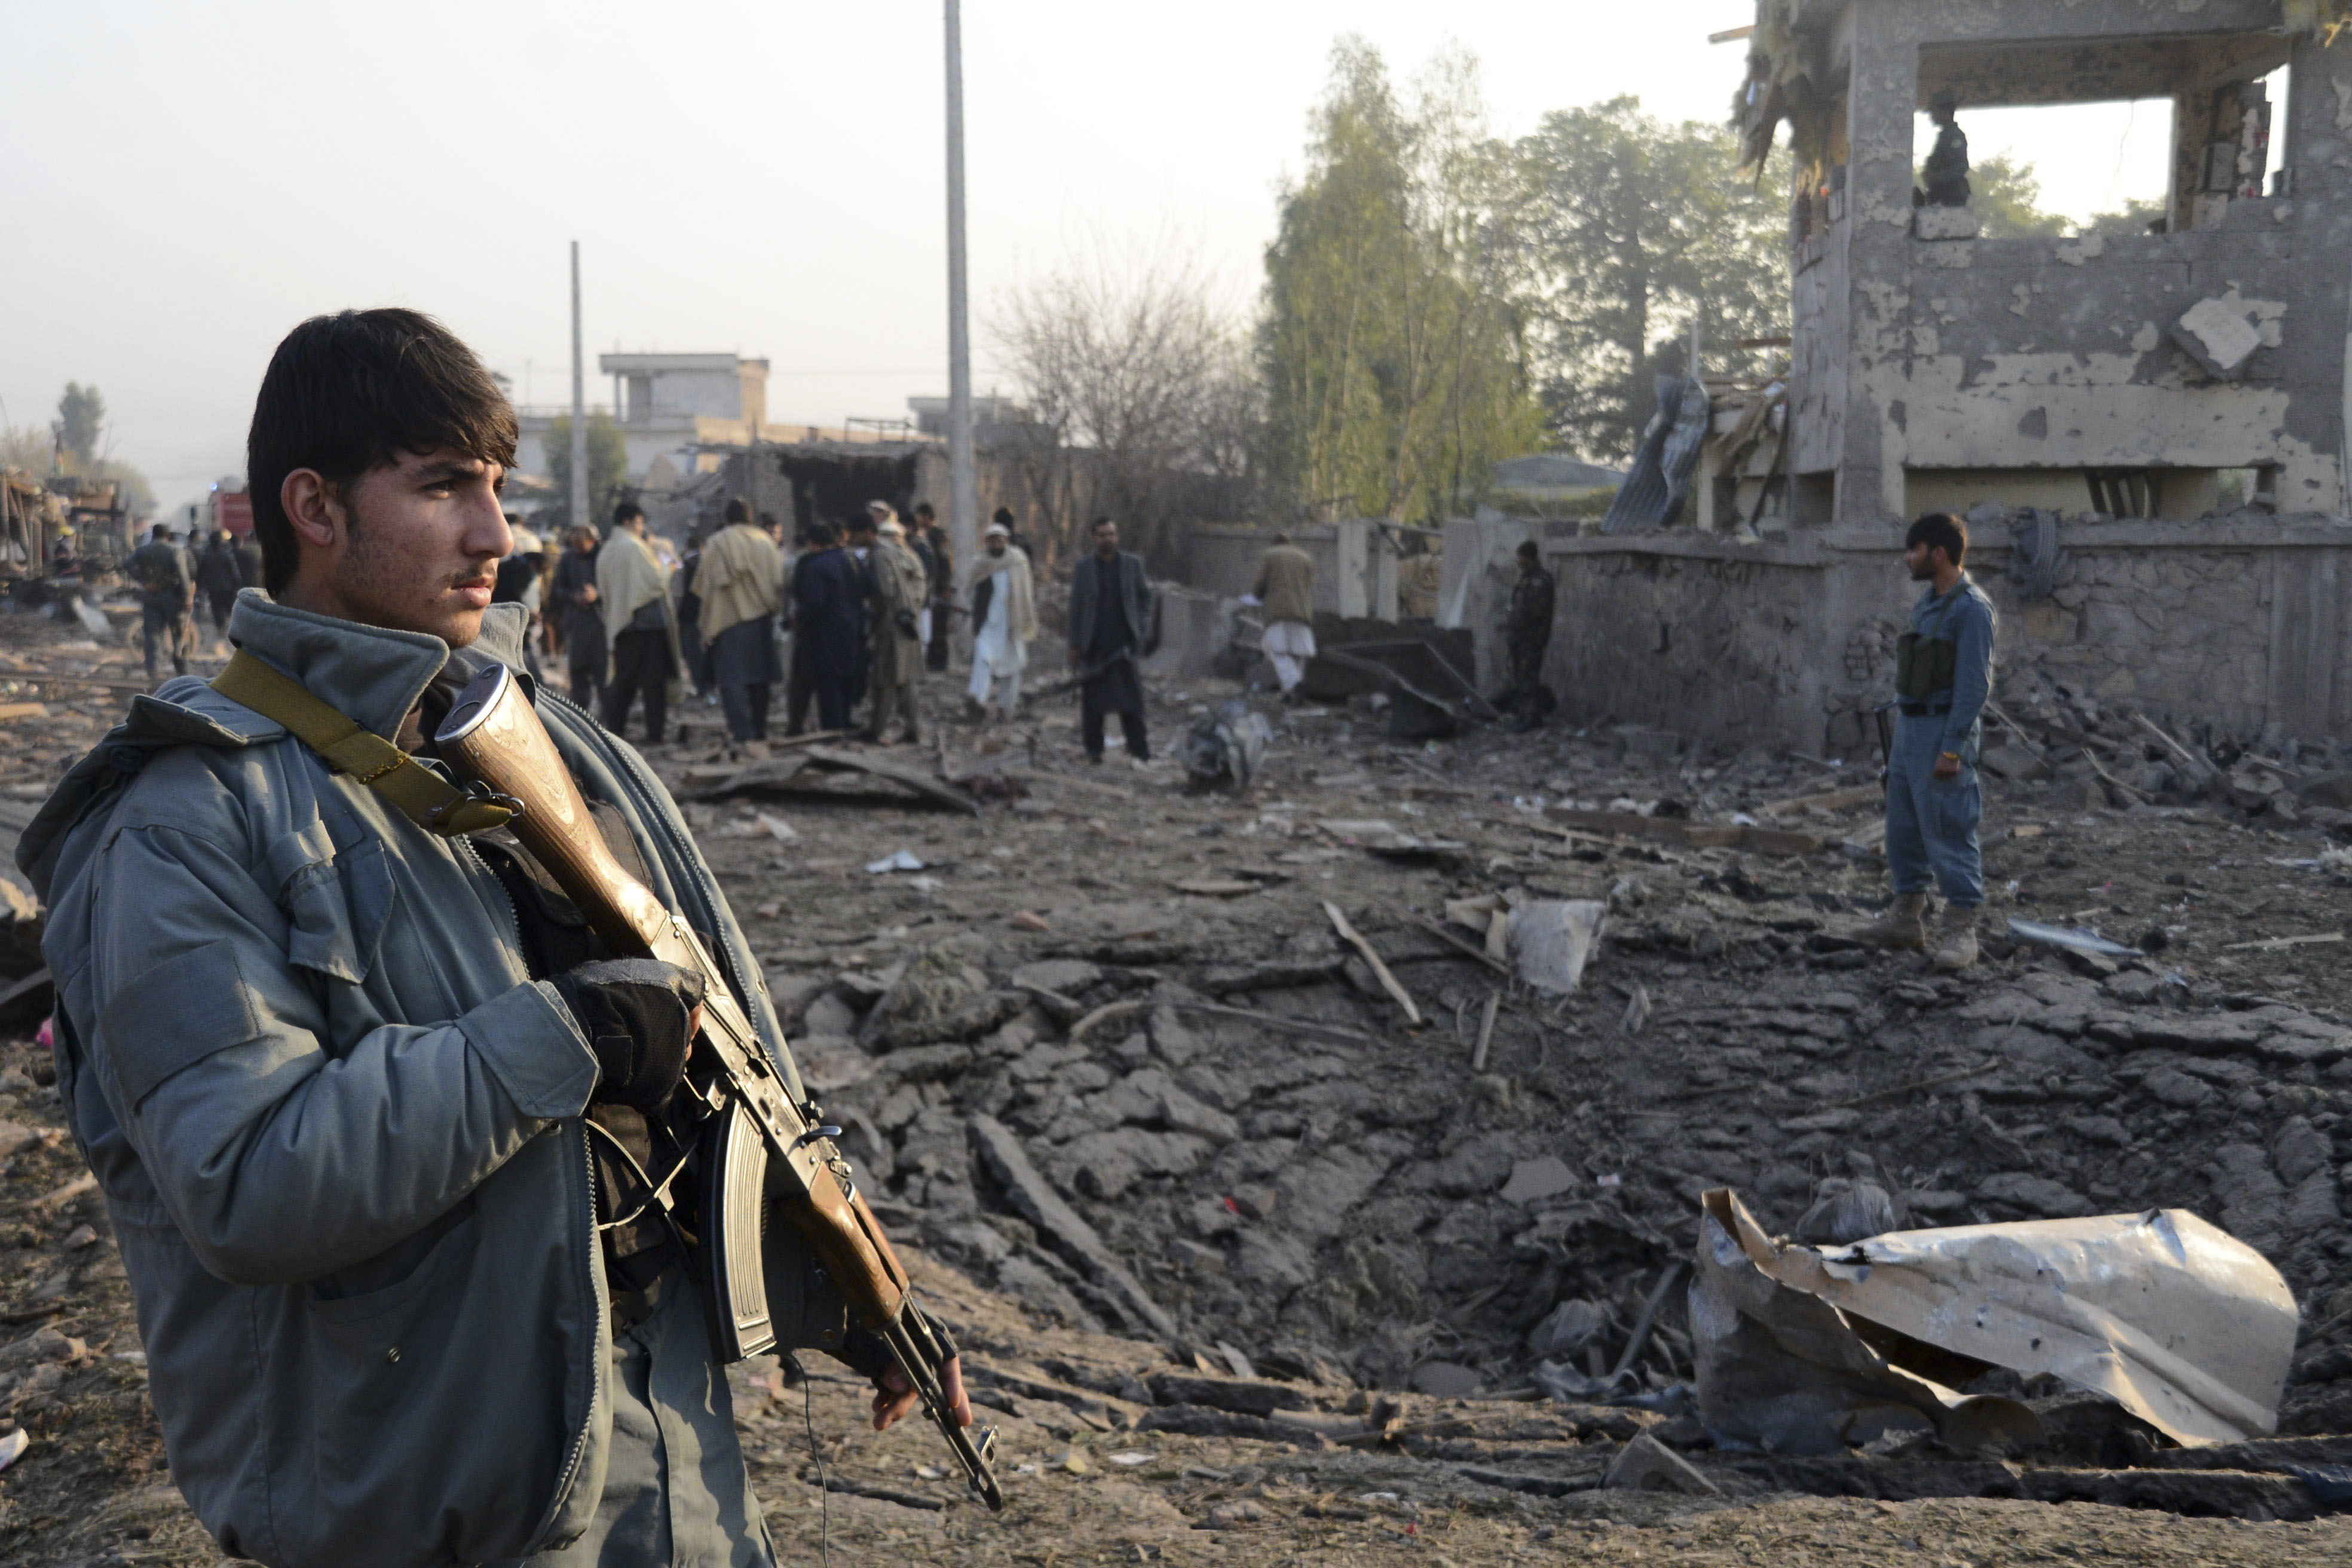 Afghan security members inspect the site of a suicide car bombing at Surkh Rud district in Nangarhar province, east of Kabul, Afghanistan, Dec. 7, 2015.